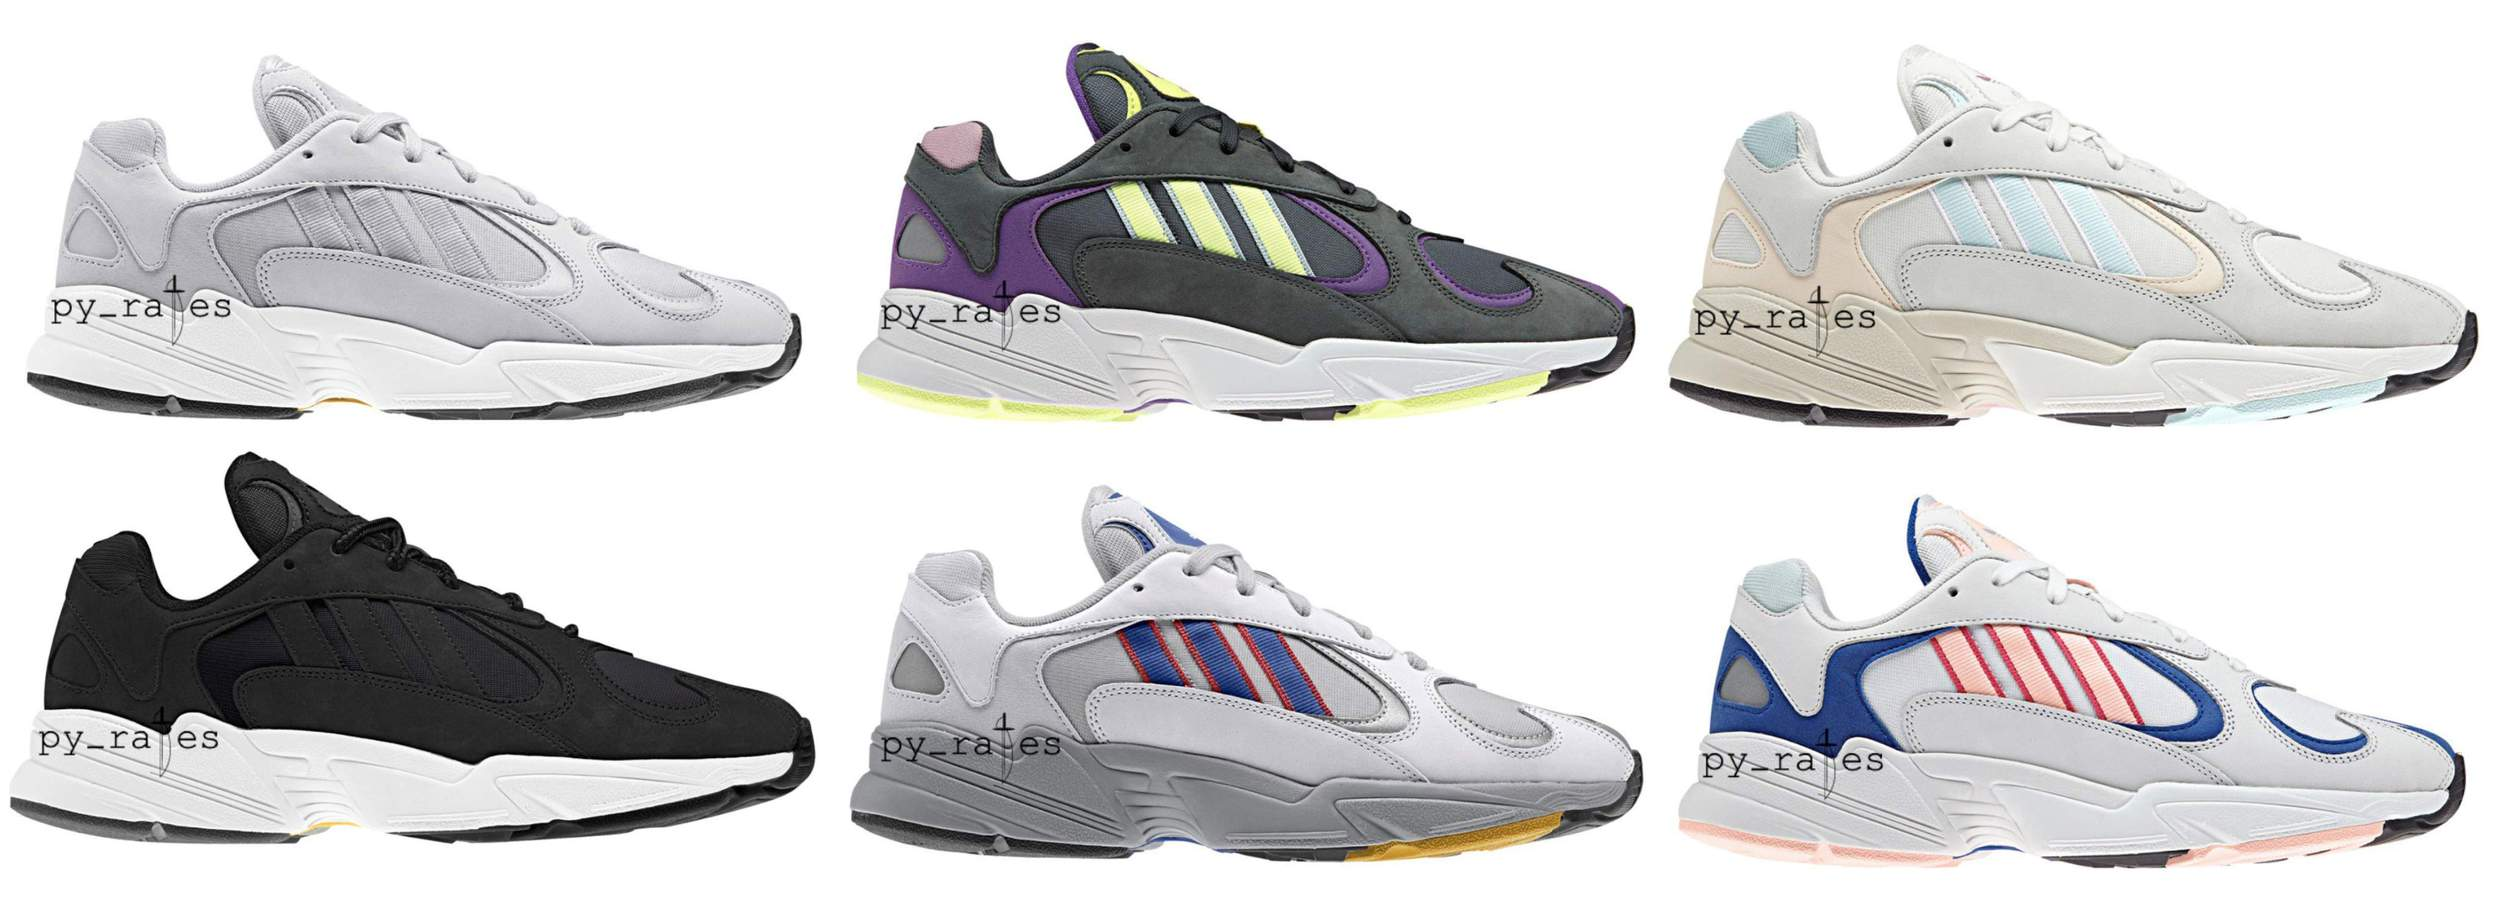 adidas Yung-1 Leaked in Six Colorways - JustFreshKicks 5efc99d91